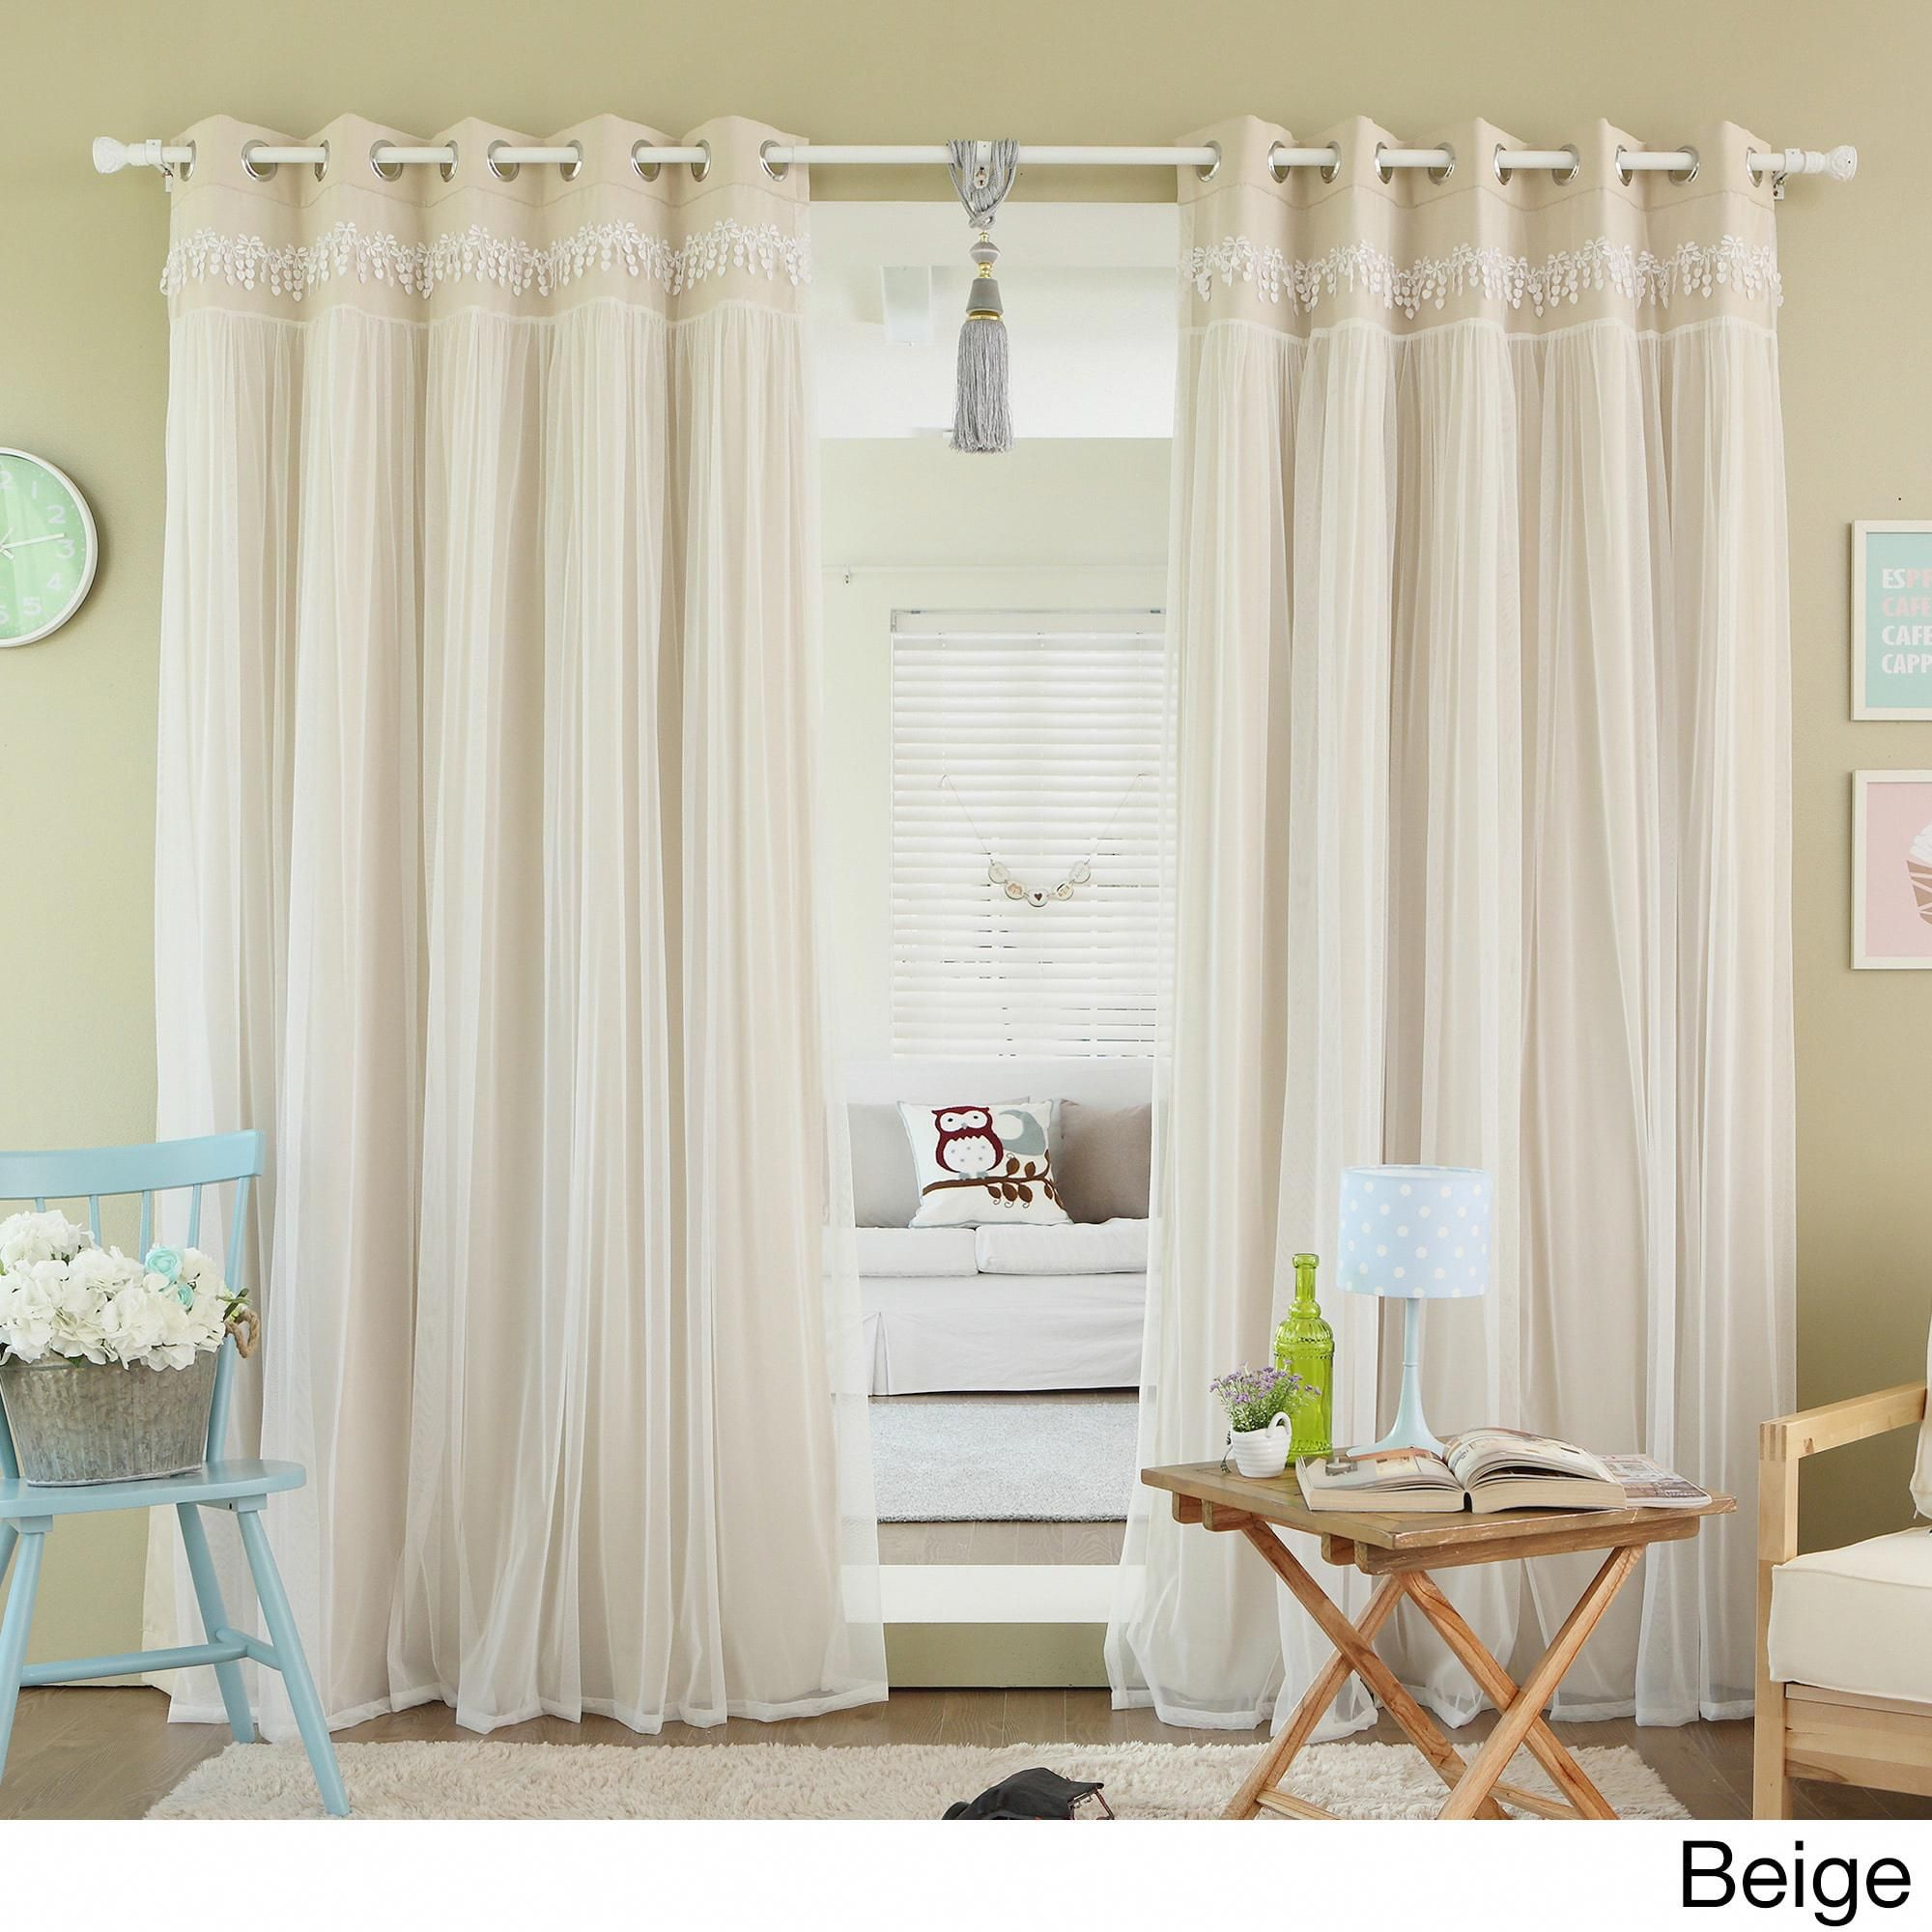 Aurora Home Lace Overlay Room Darkening Grommet Top Curtain Panel